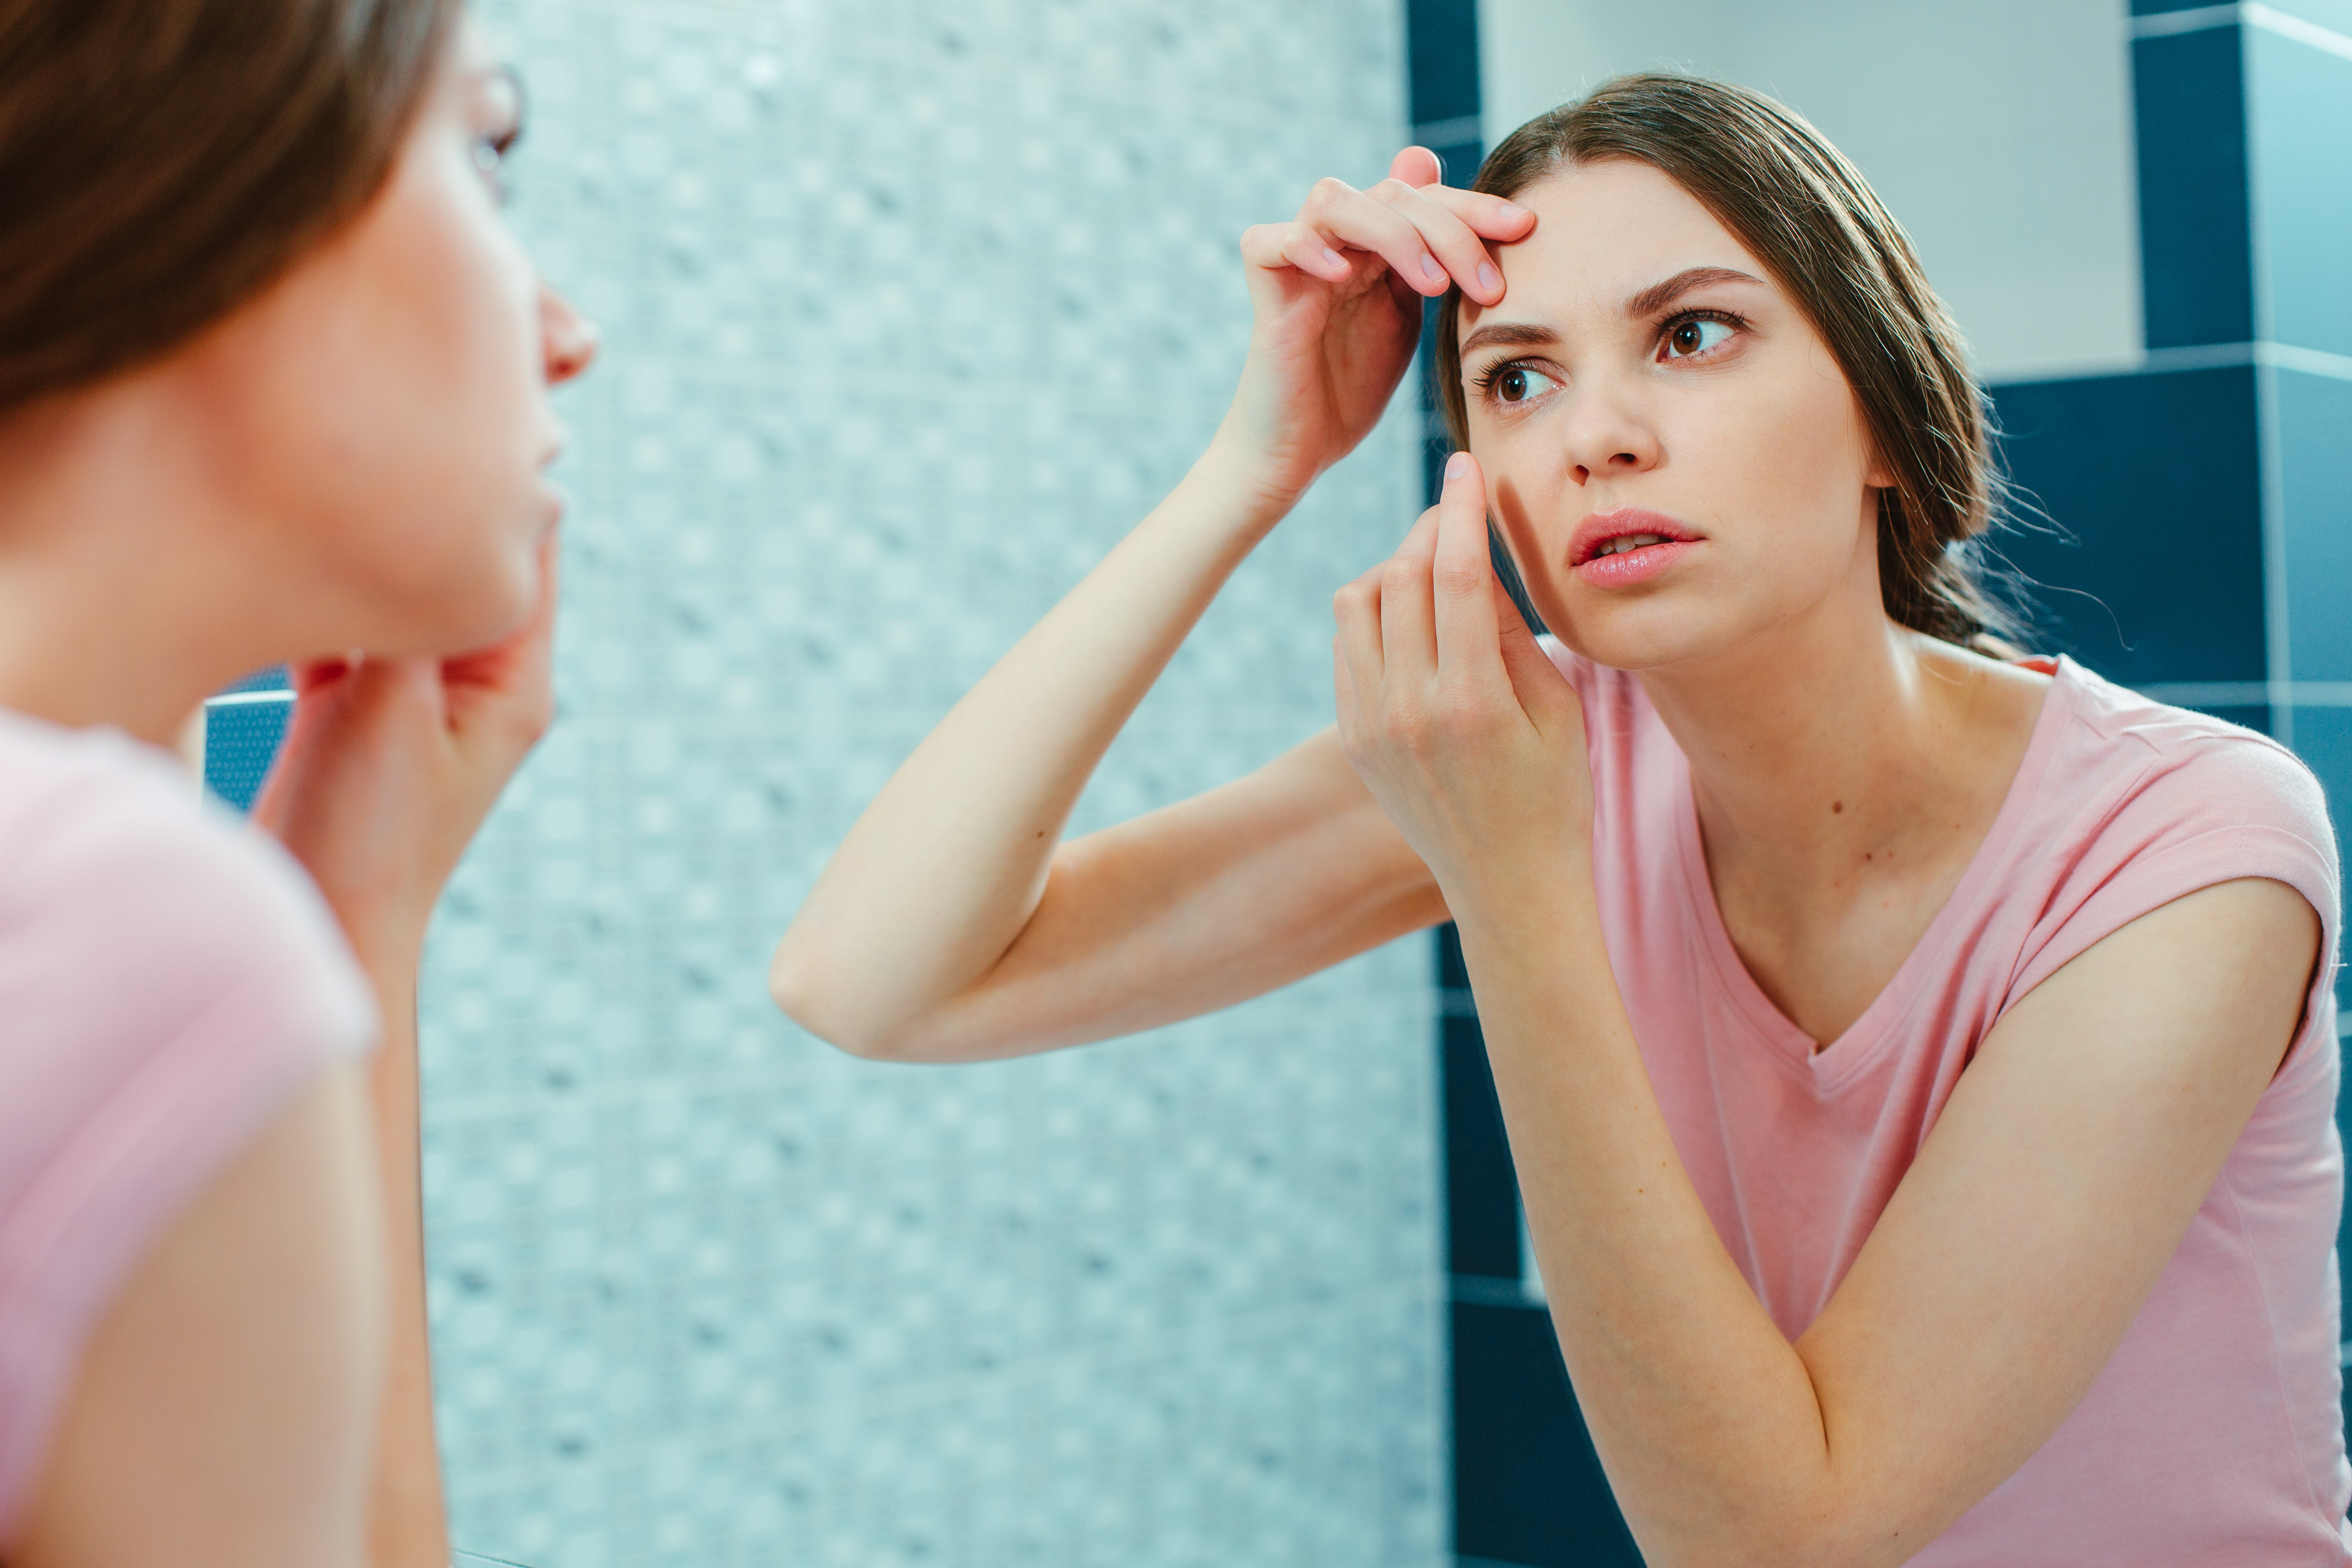 7 Safe Ways to Get Rid of Whiteheads